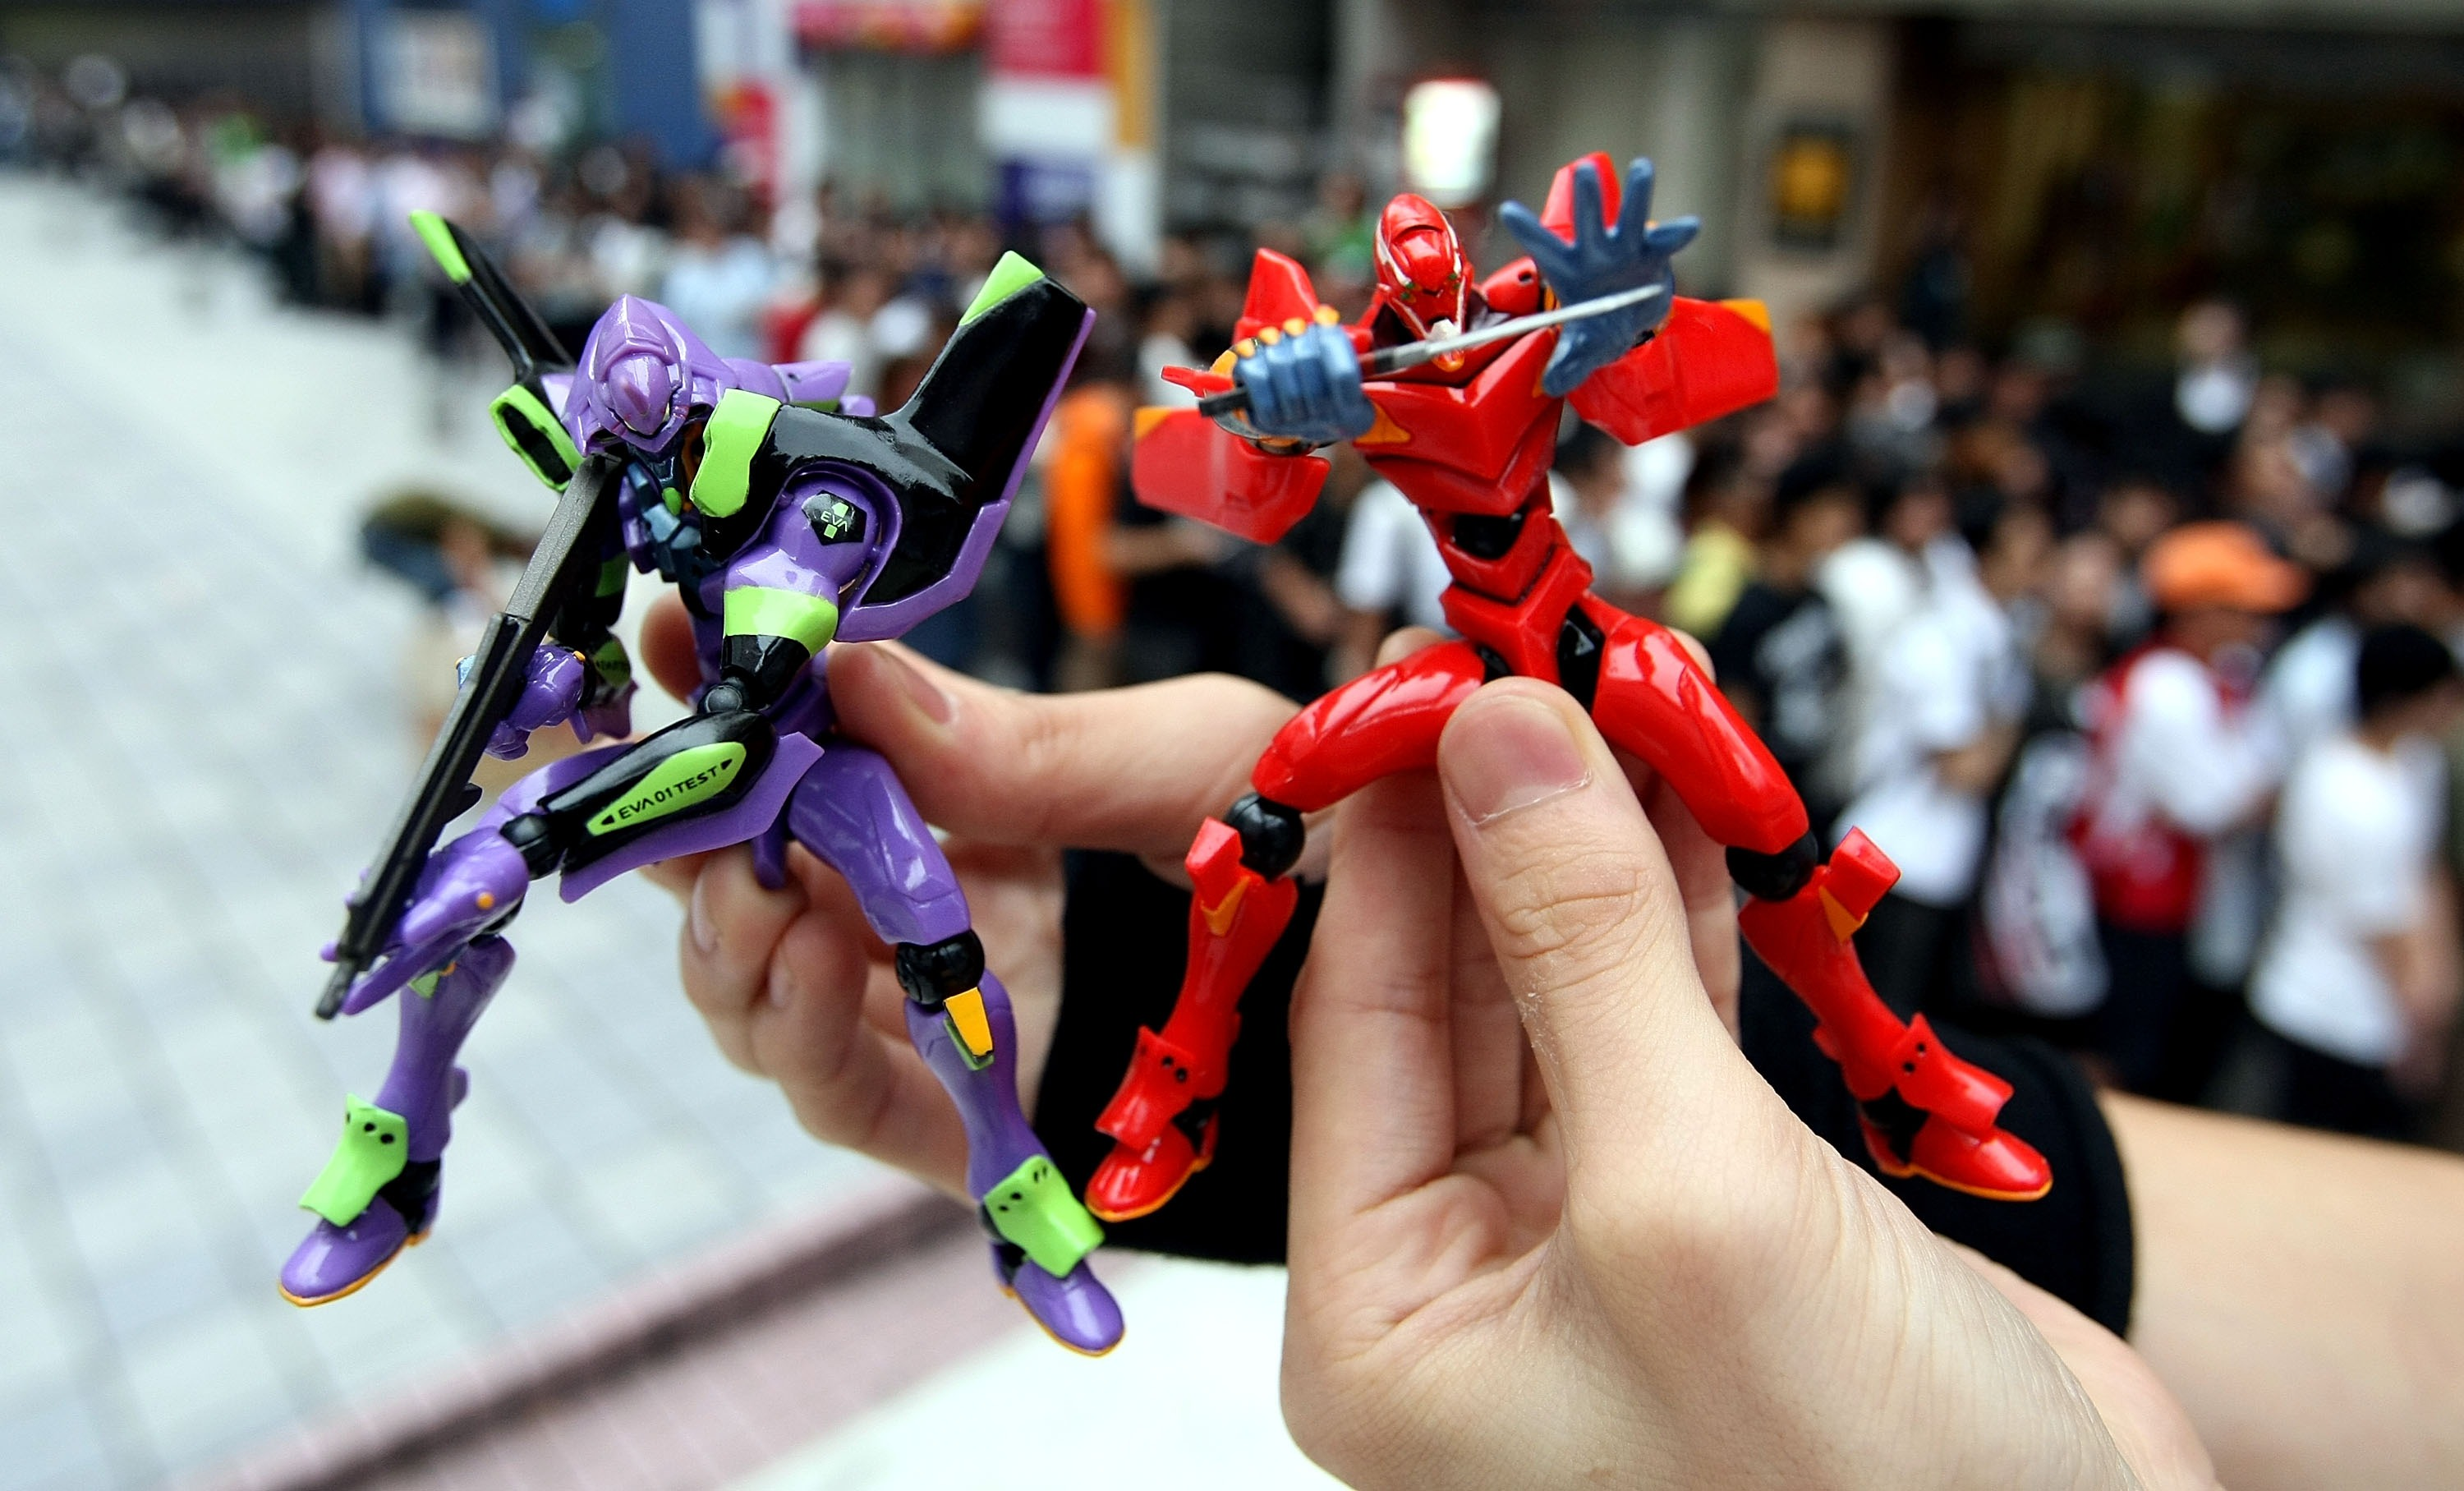 Fans Gather On The Opening Day Of 'Evangelion'